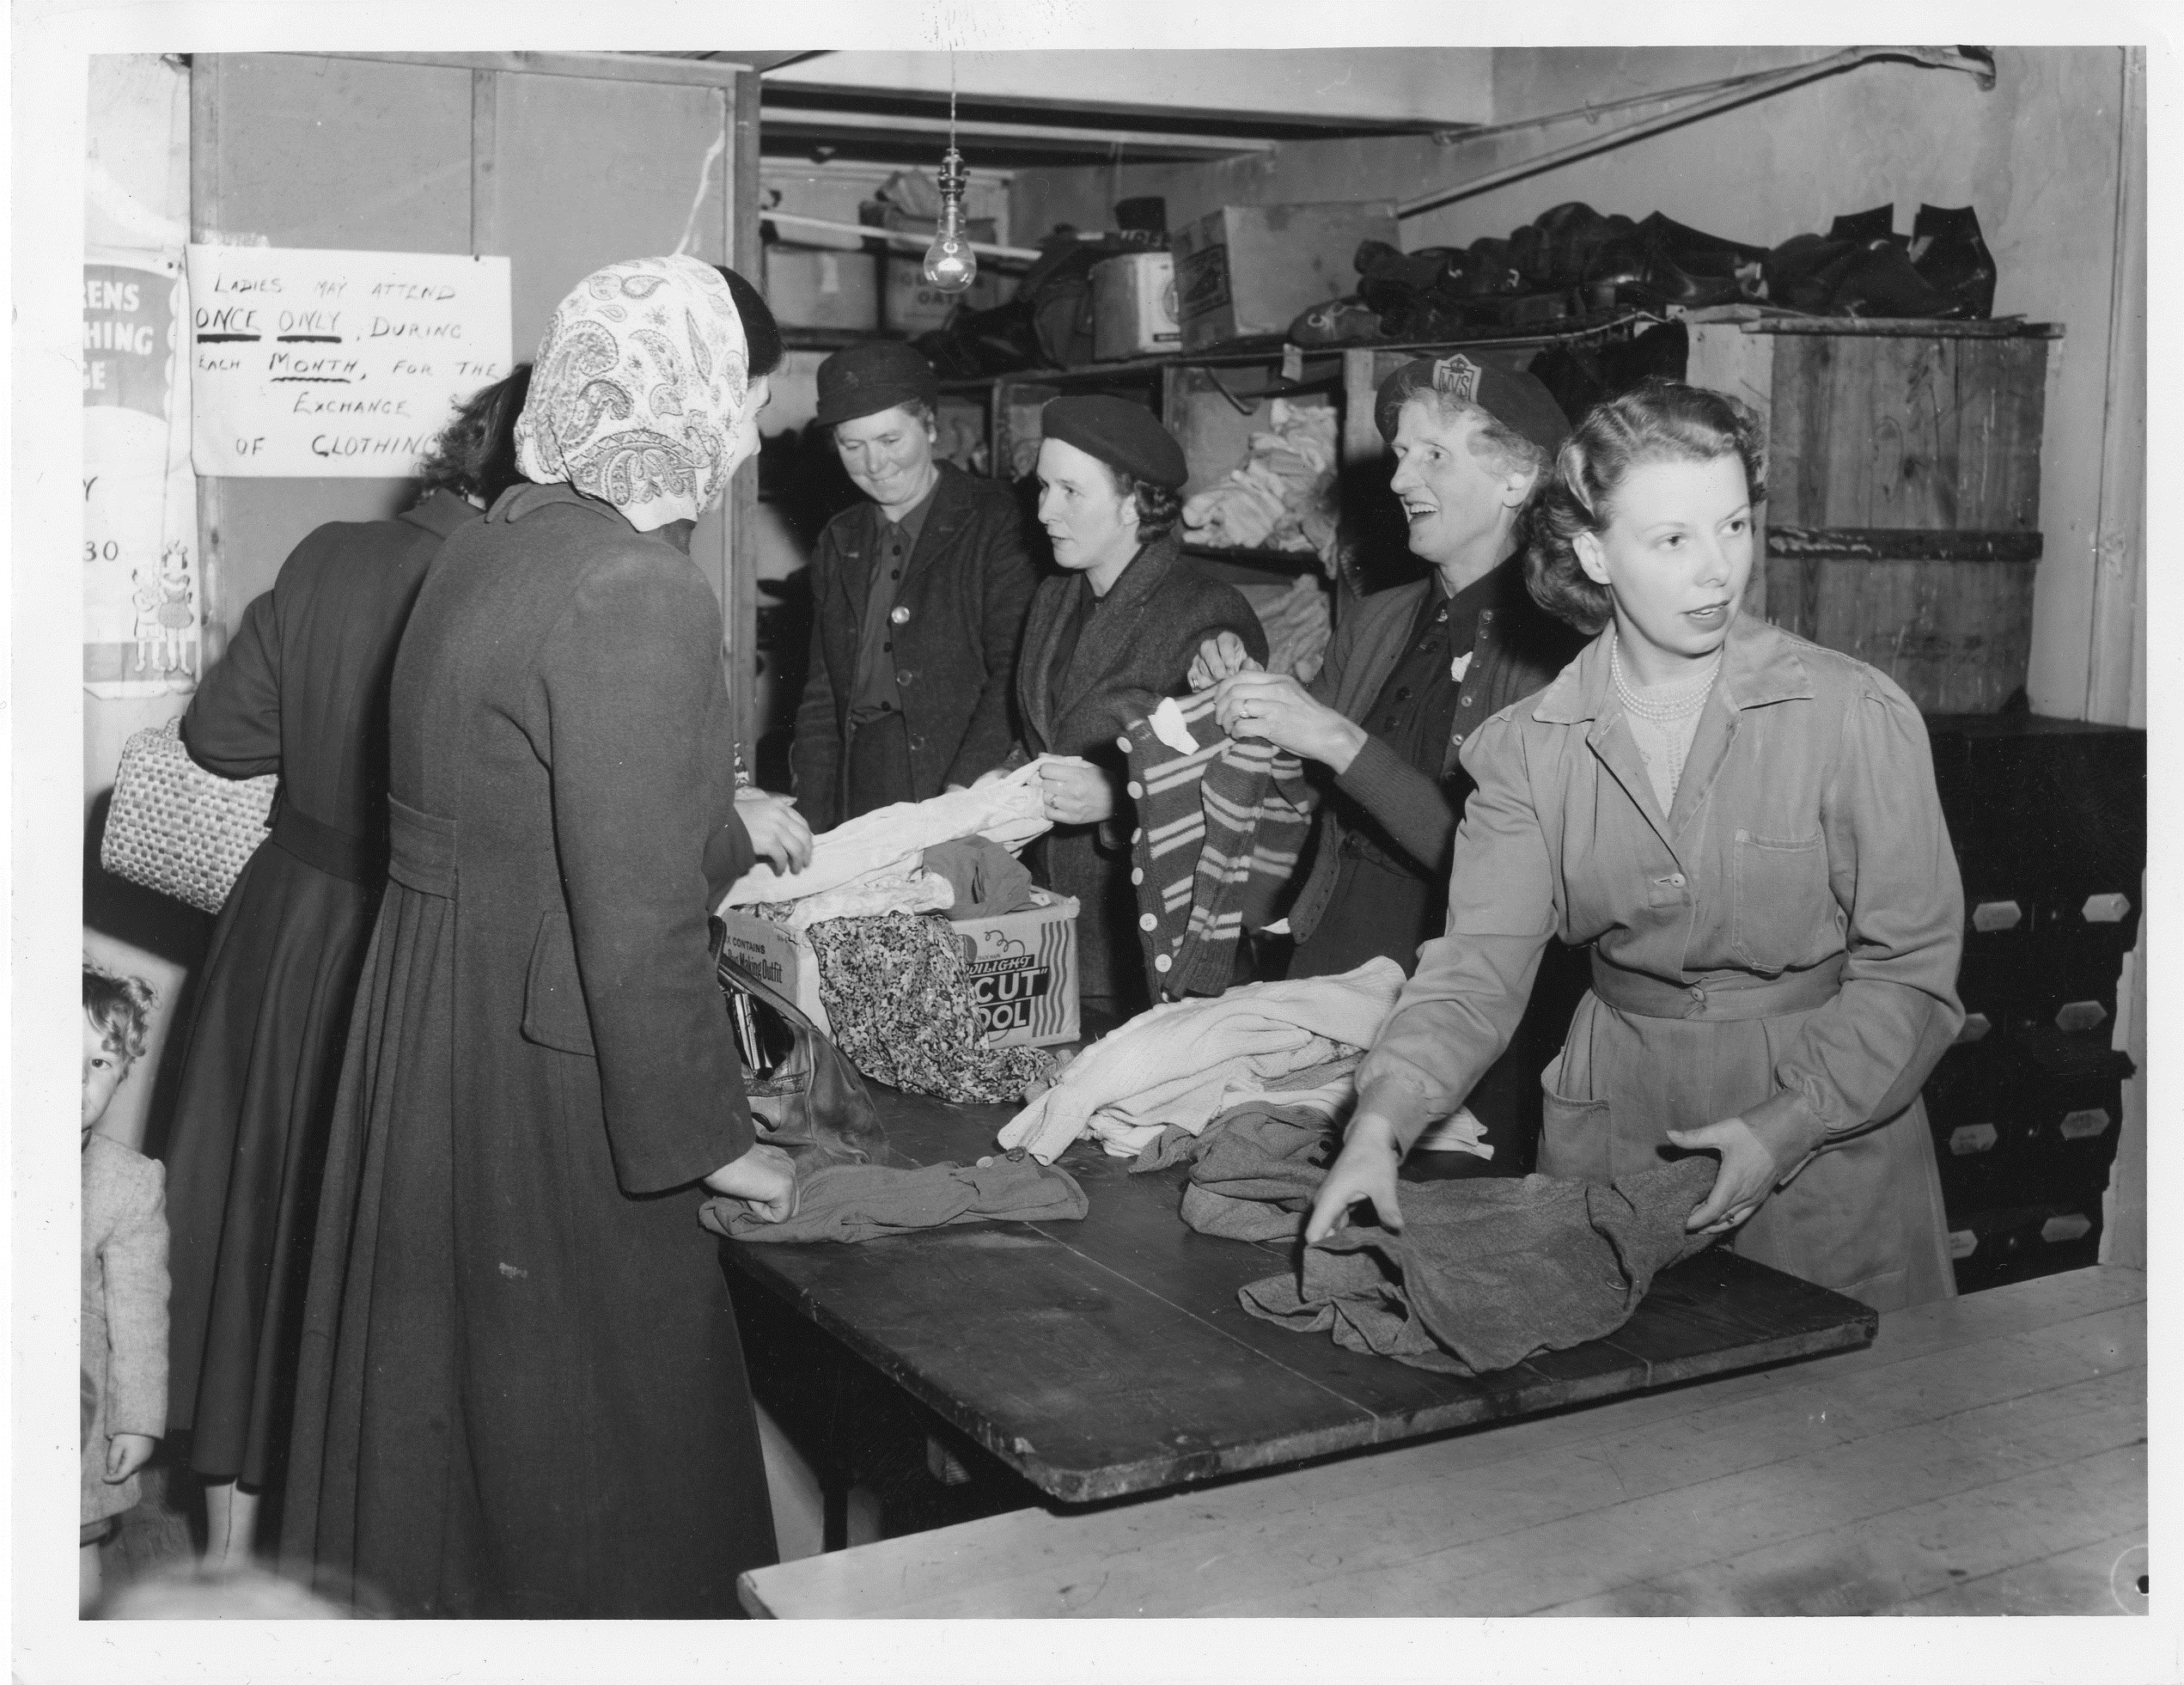 A WVS clothing exchange, c. 1945-1950.